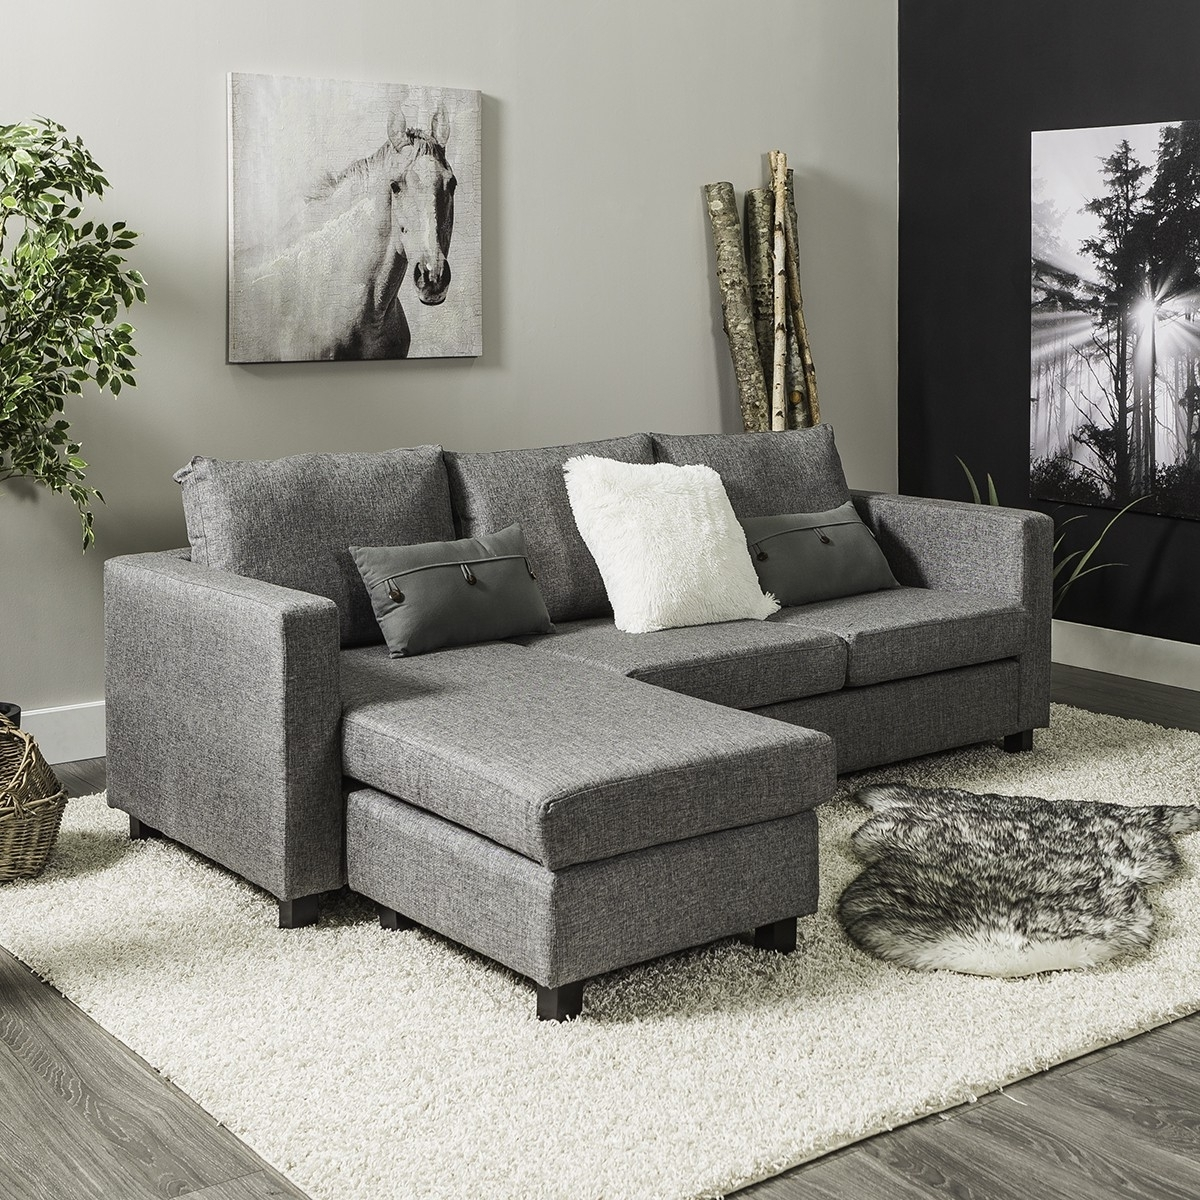 Well Known Jysk Sectional Sofas Regarding Casa Corner Sofa (grey) (View 7 of 20)